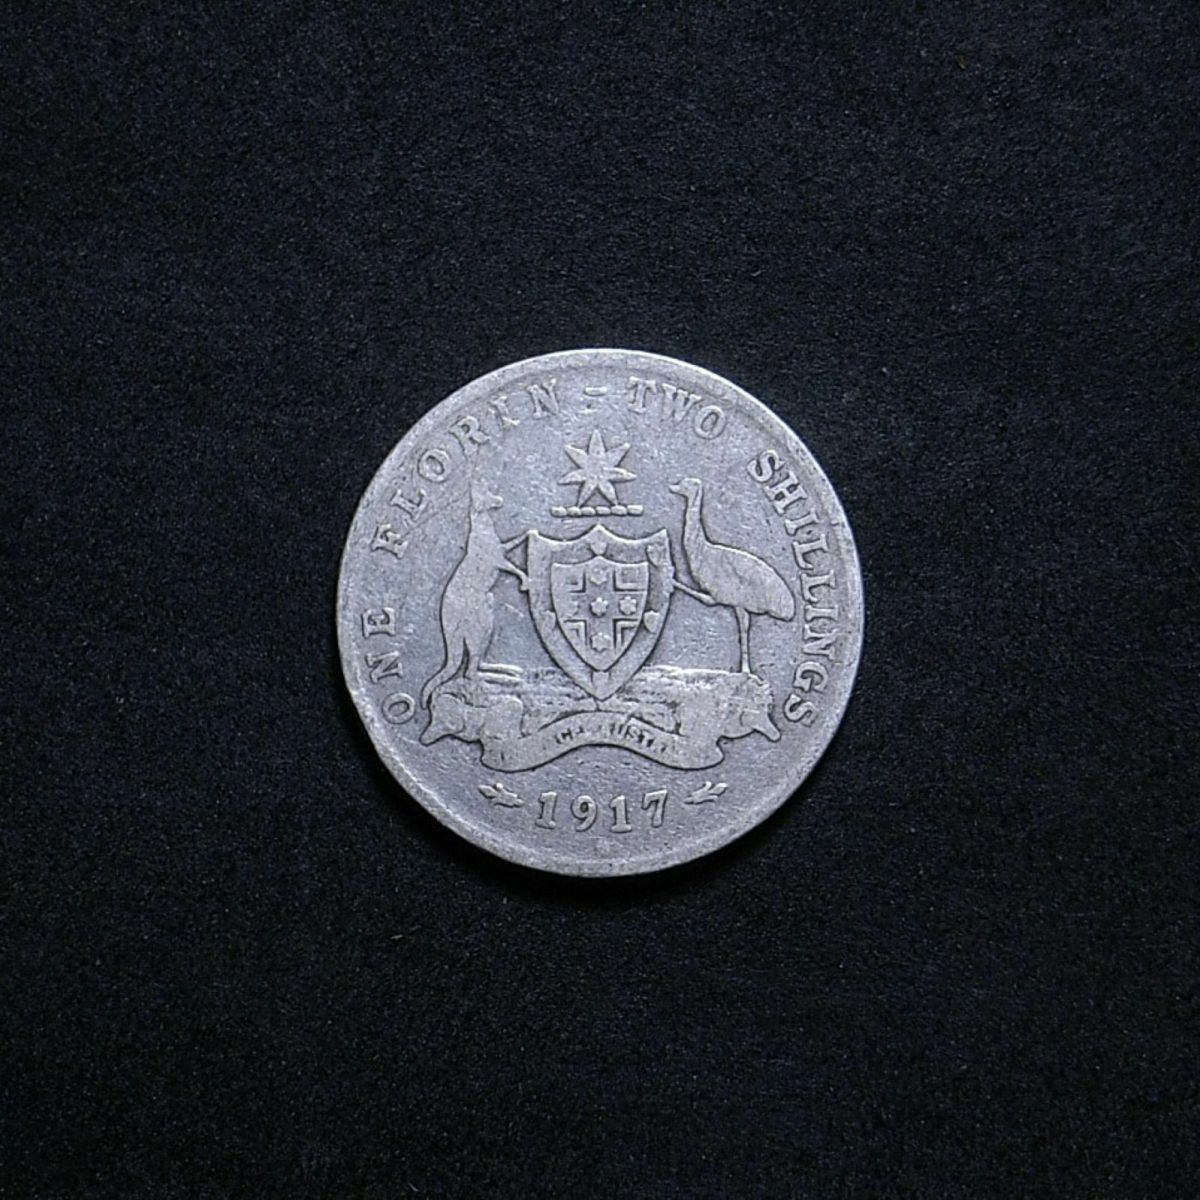 Aussie 1917M reverse showing the extent of wear on the coin